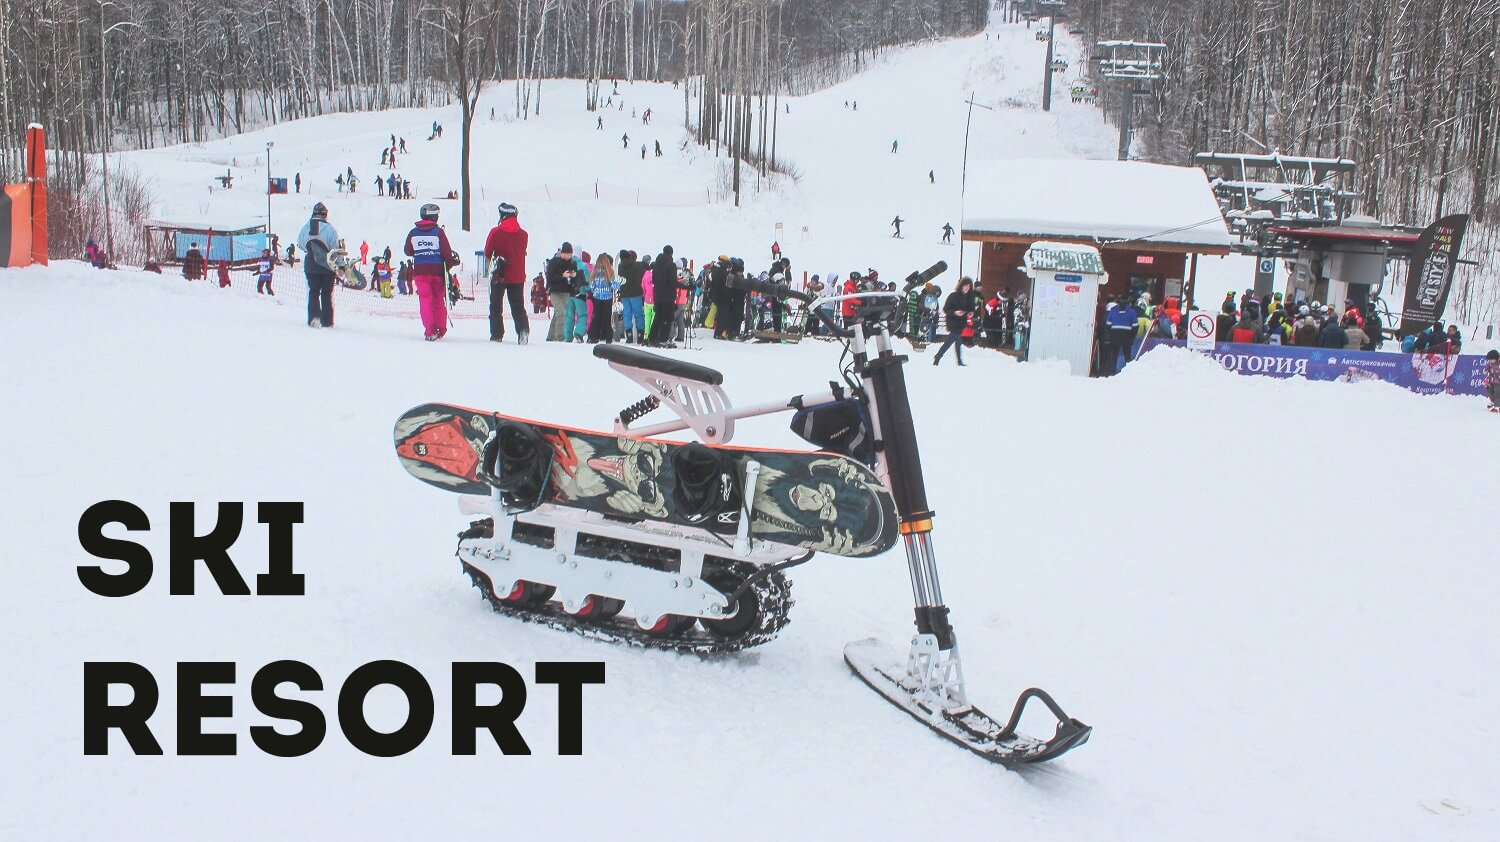 Snowmobile-for-skiing-resort_4